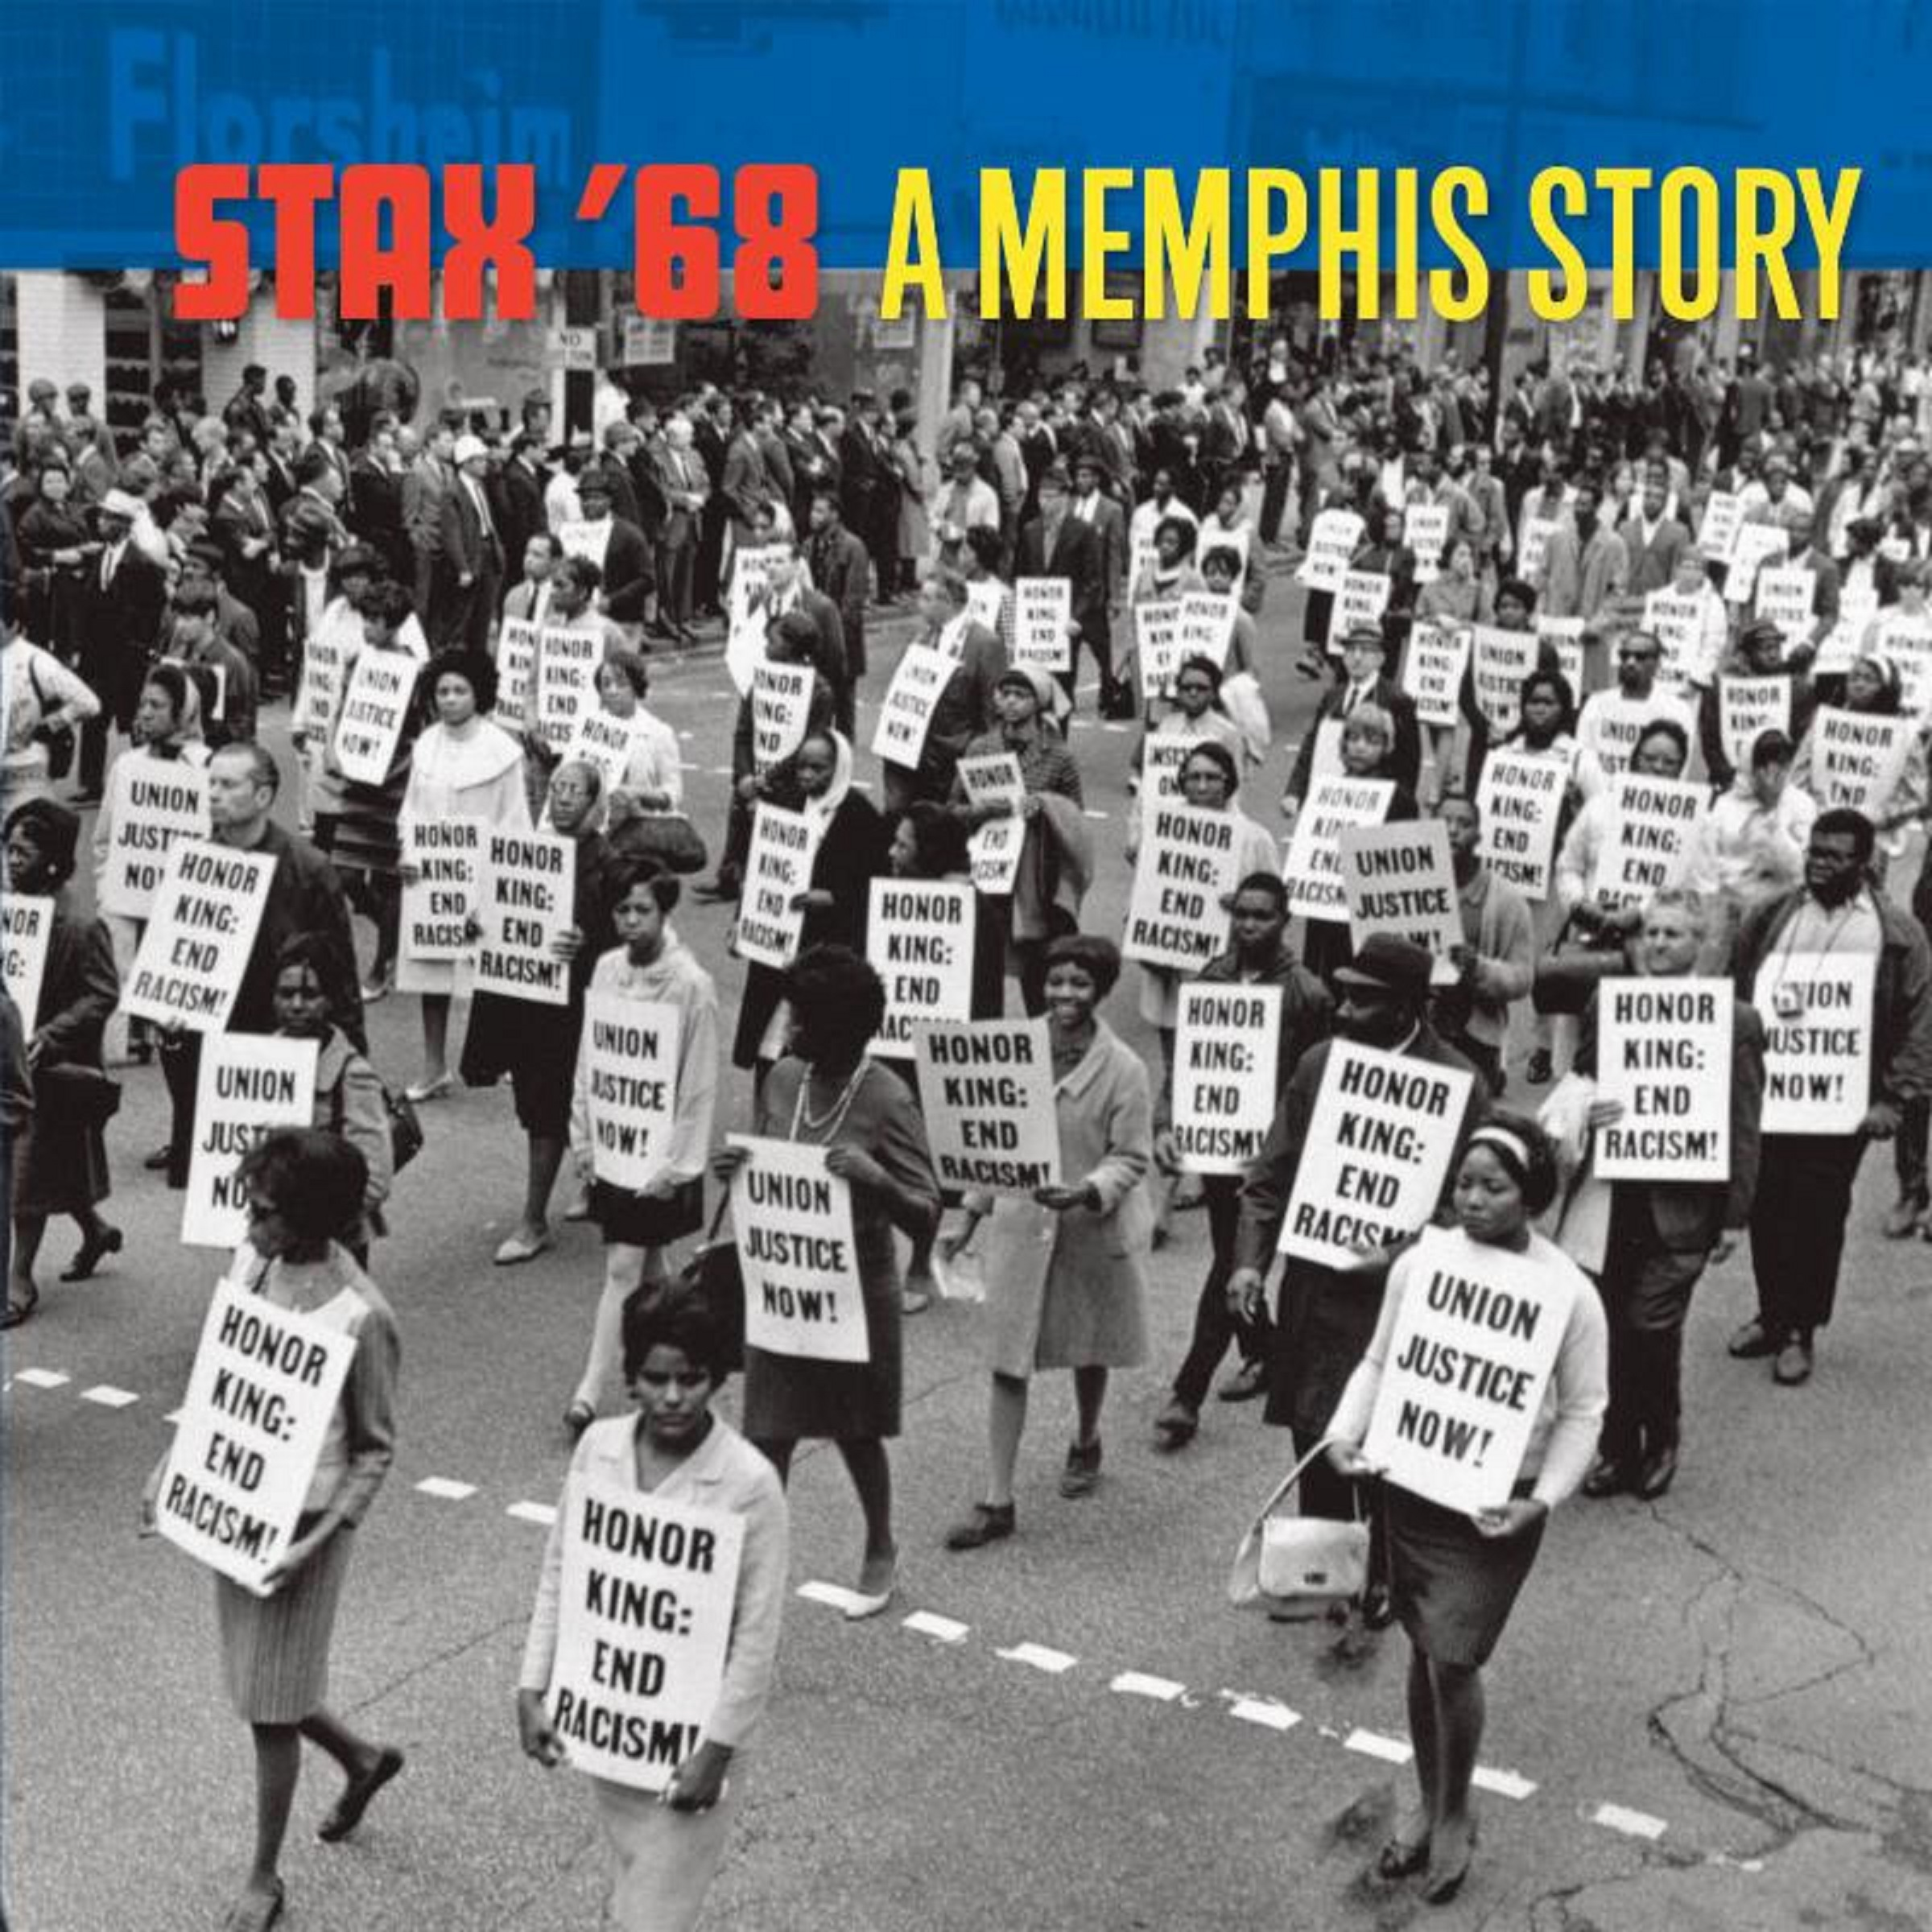 Stax '68: A MEMPHIS STORY DUE OUT OCTOBER 19